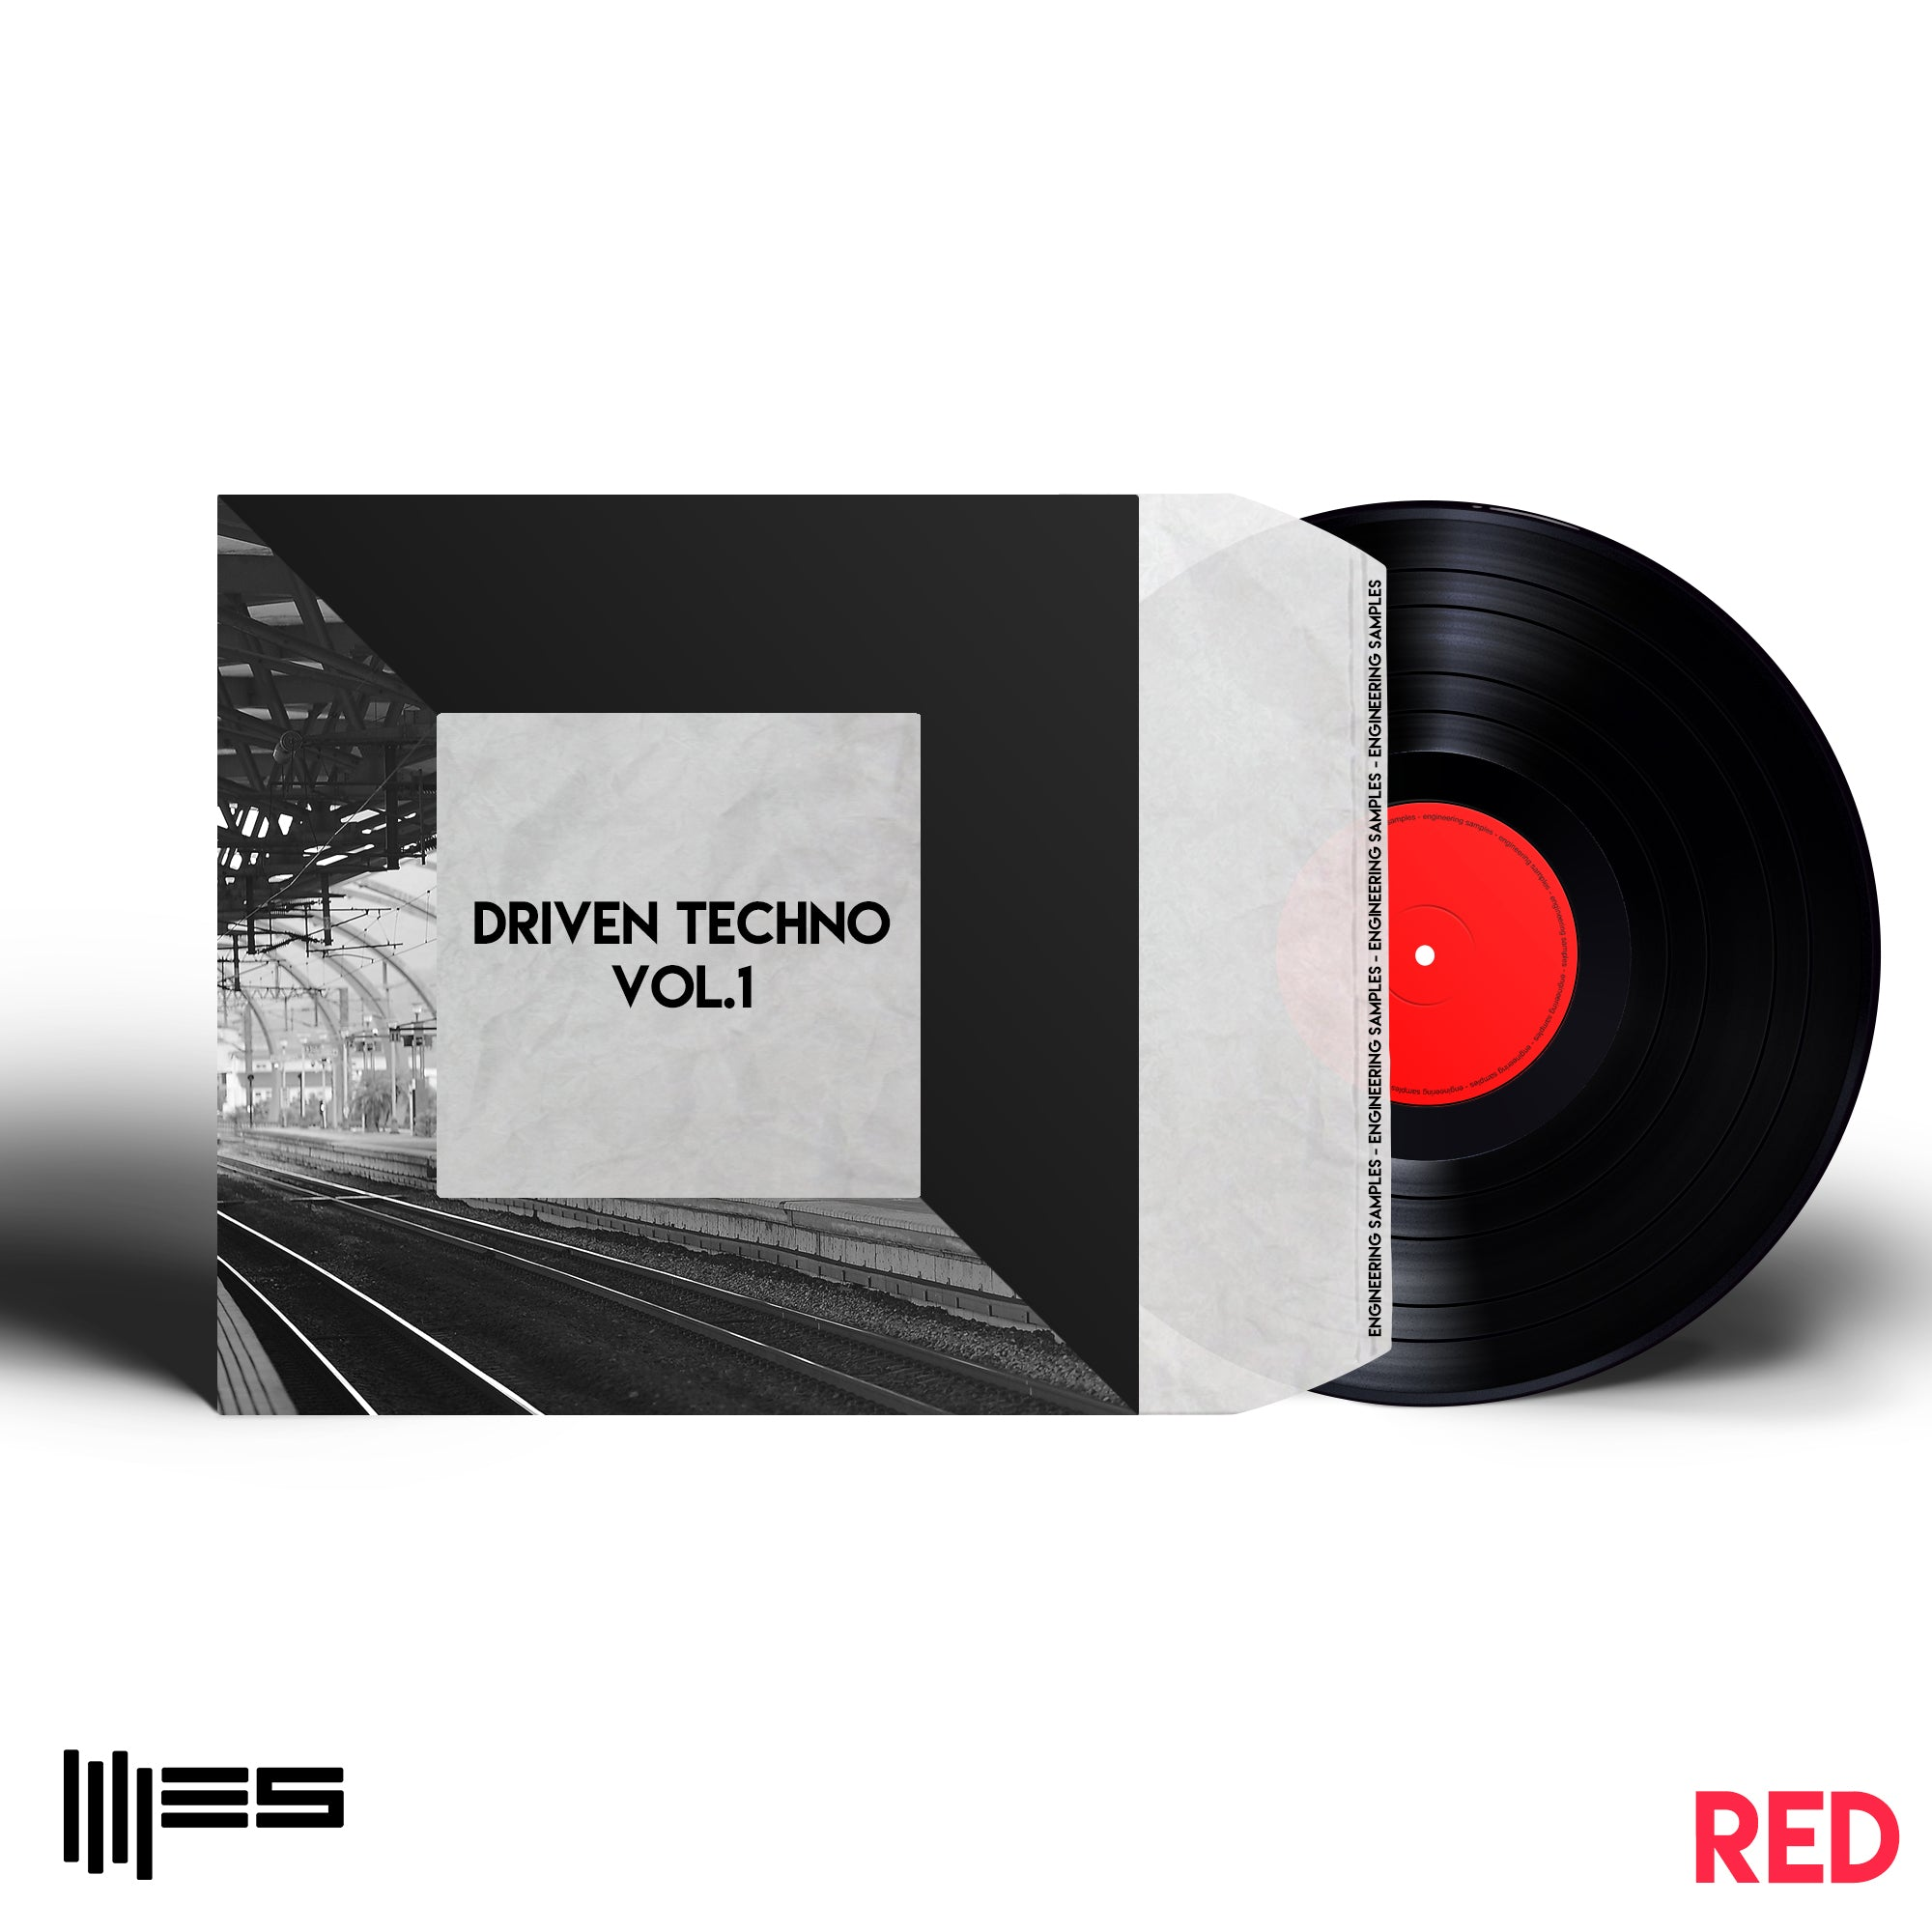 Driven Techno Vol.1